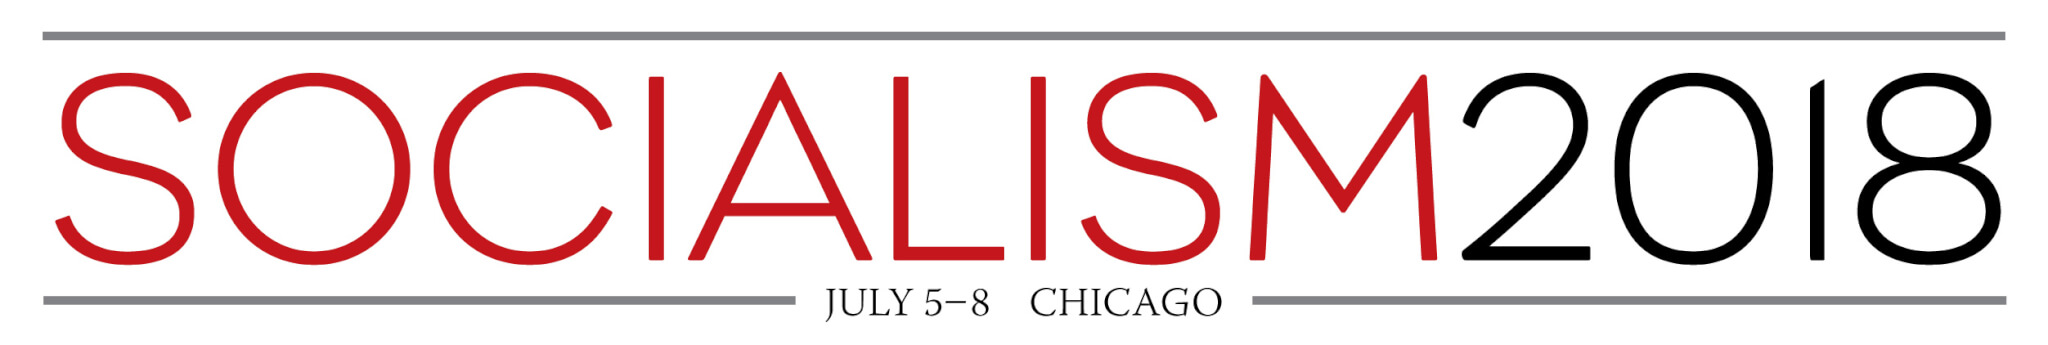 Socialism 2018: July 5-8, Chicago